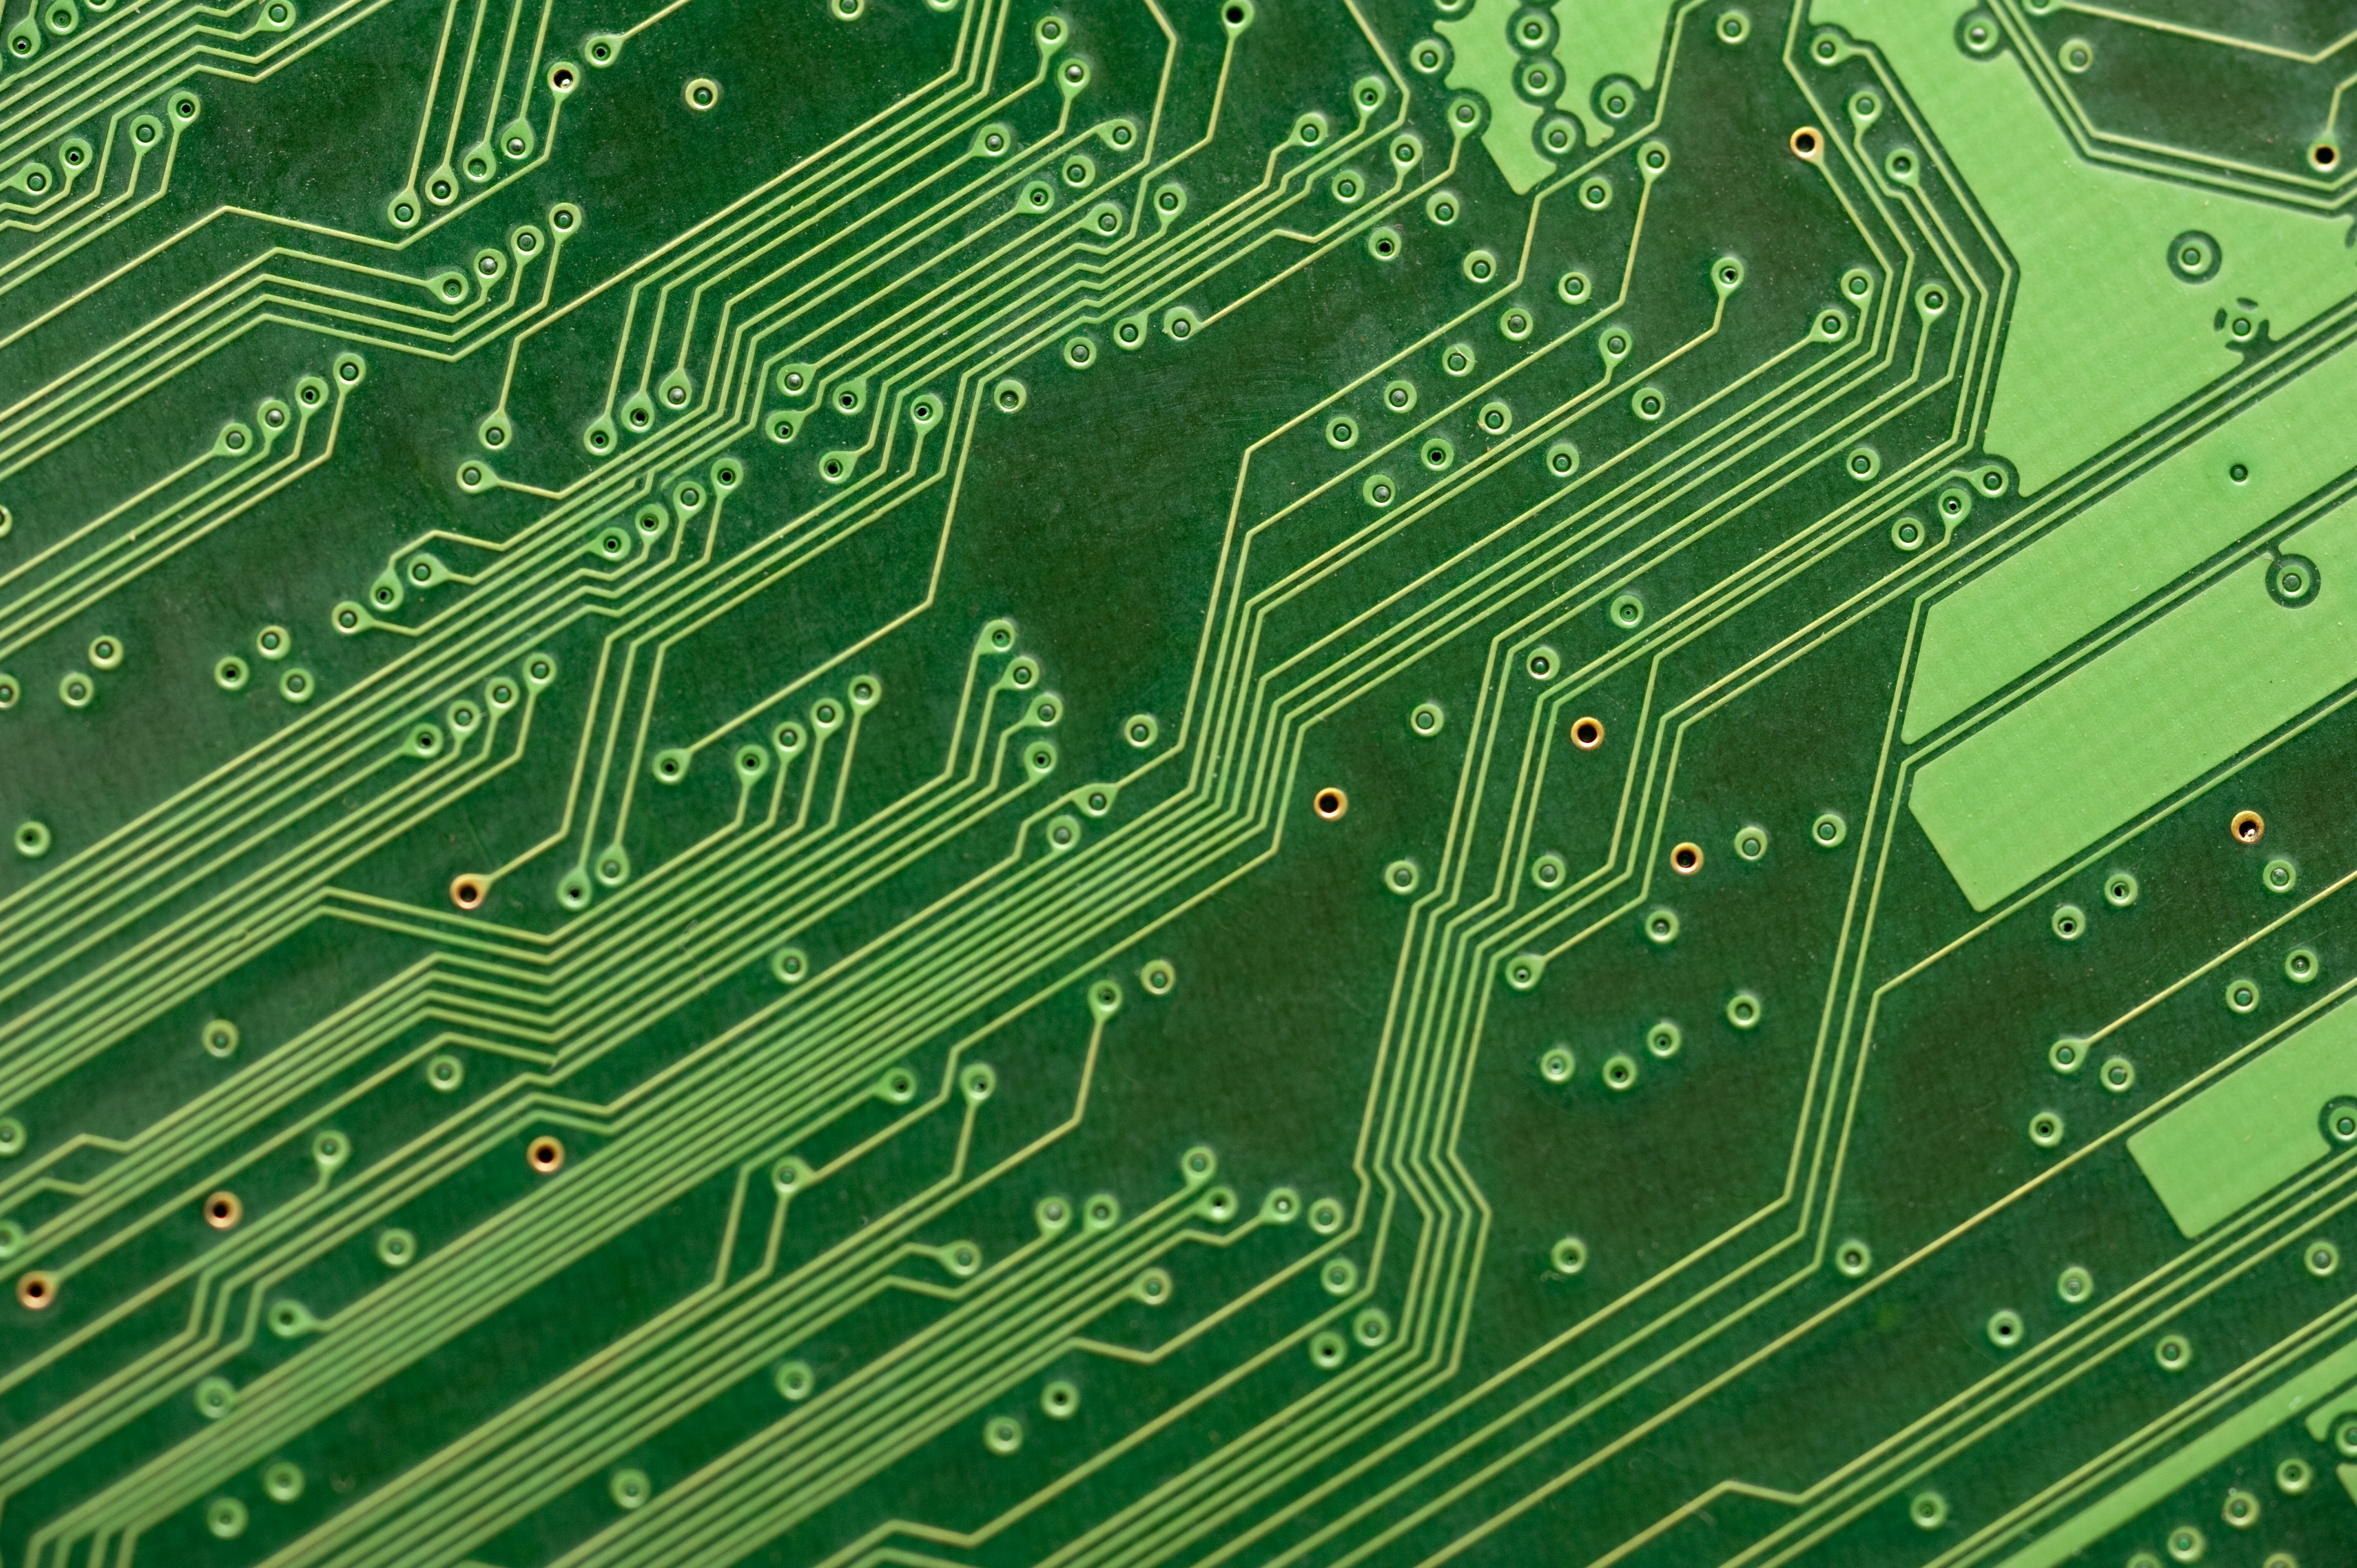 Circuit Board Background Wallpapersafari Design Over Green Vector Illustration Images Amp Pictures Becuo 4256x2832